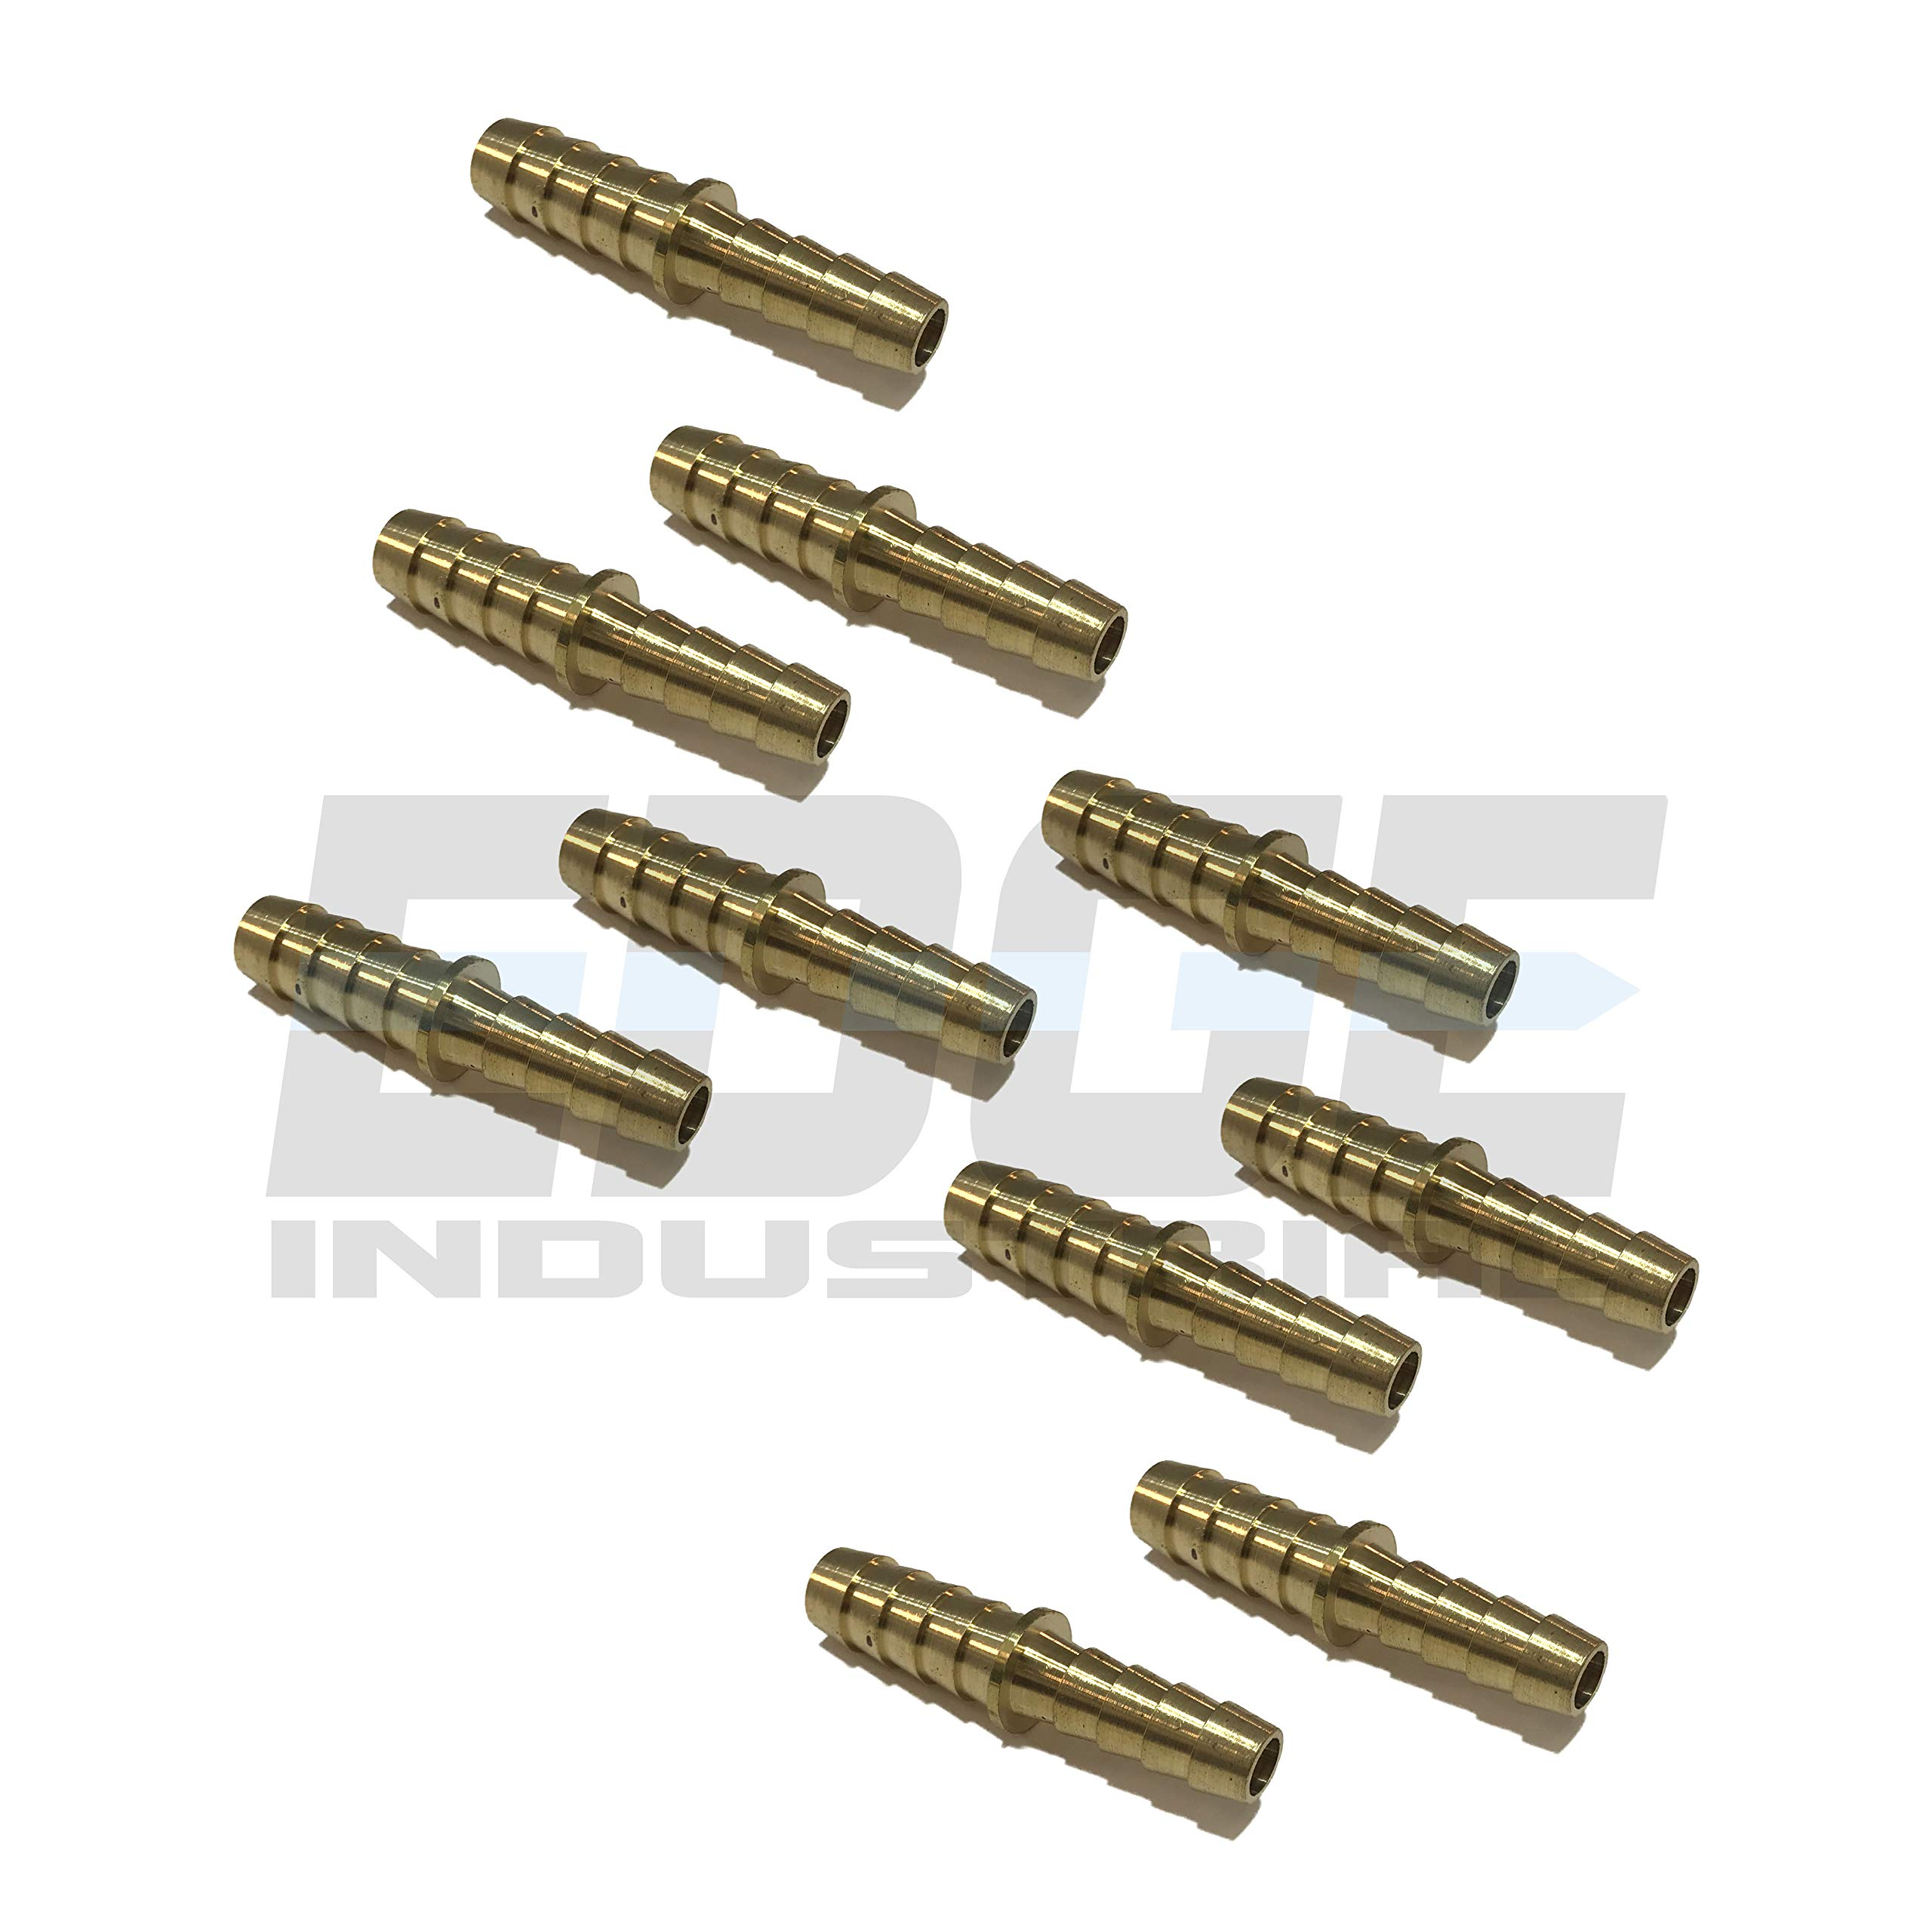 EDGE INDUSTRIAL 3/8'' X 5/16'' Hose ID Brass Barb Reducer SPLICER Fitting Fuel / AIR / Water / Oil / Gas / WOG (Qty 10) by EDGE INDUSTRIAL (Image #1)